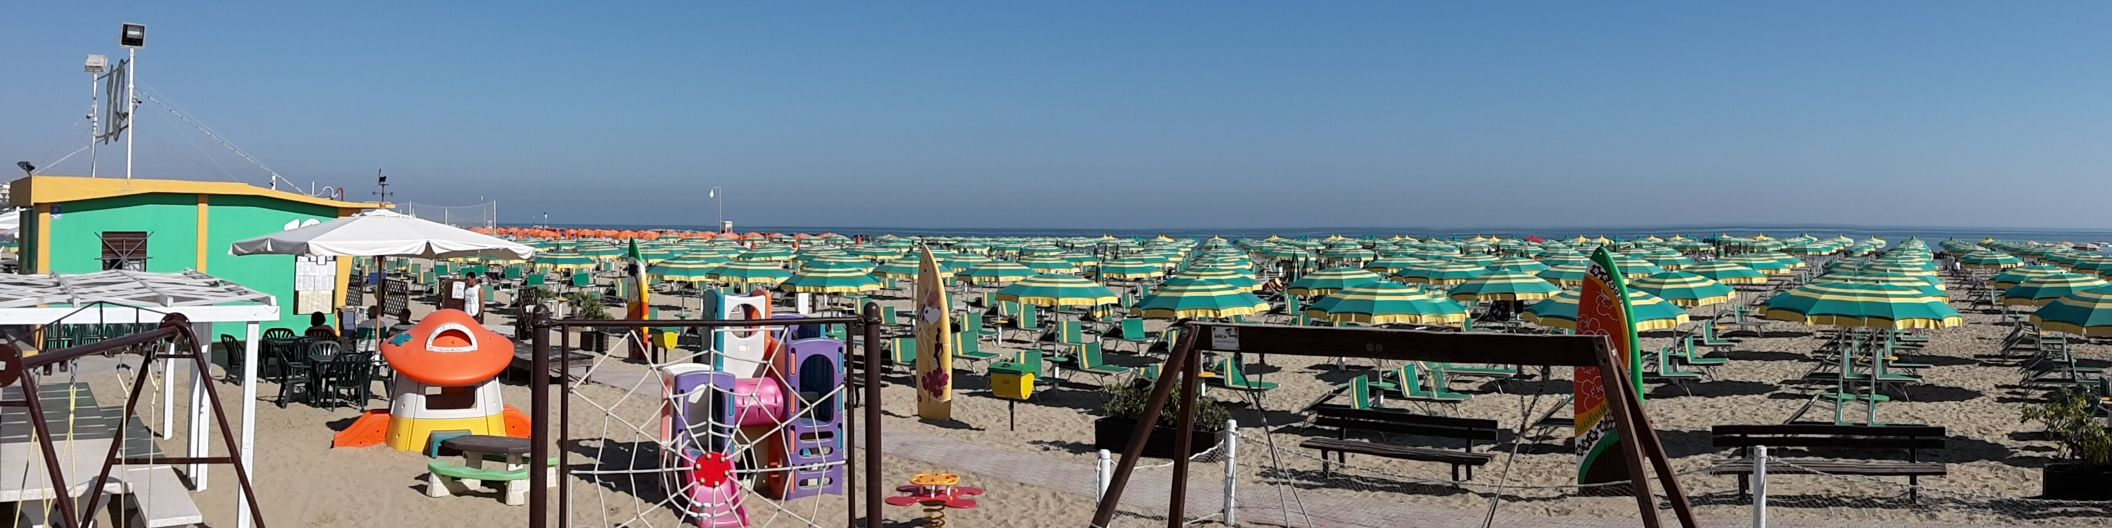 Panoramic View Of The Well Organized Beach In Emilia Romagna With